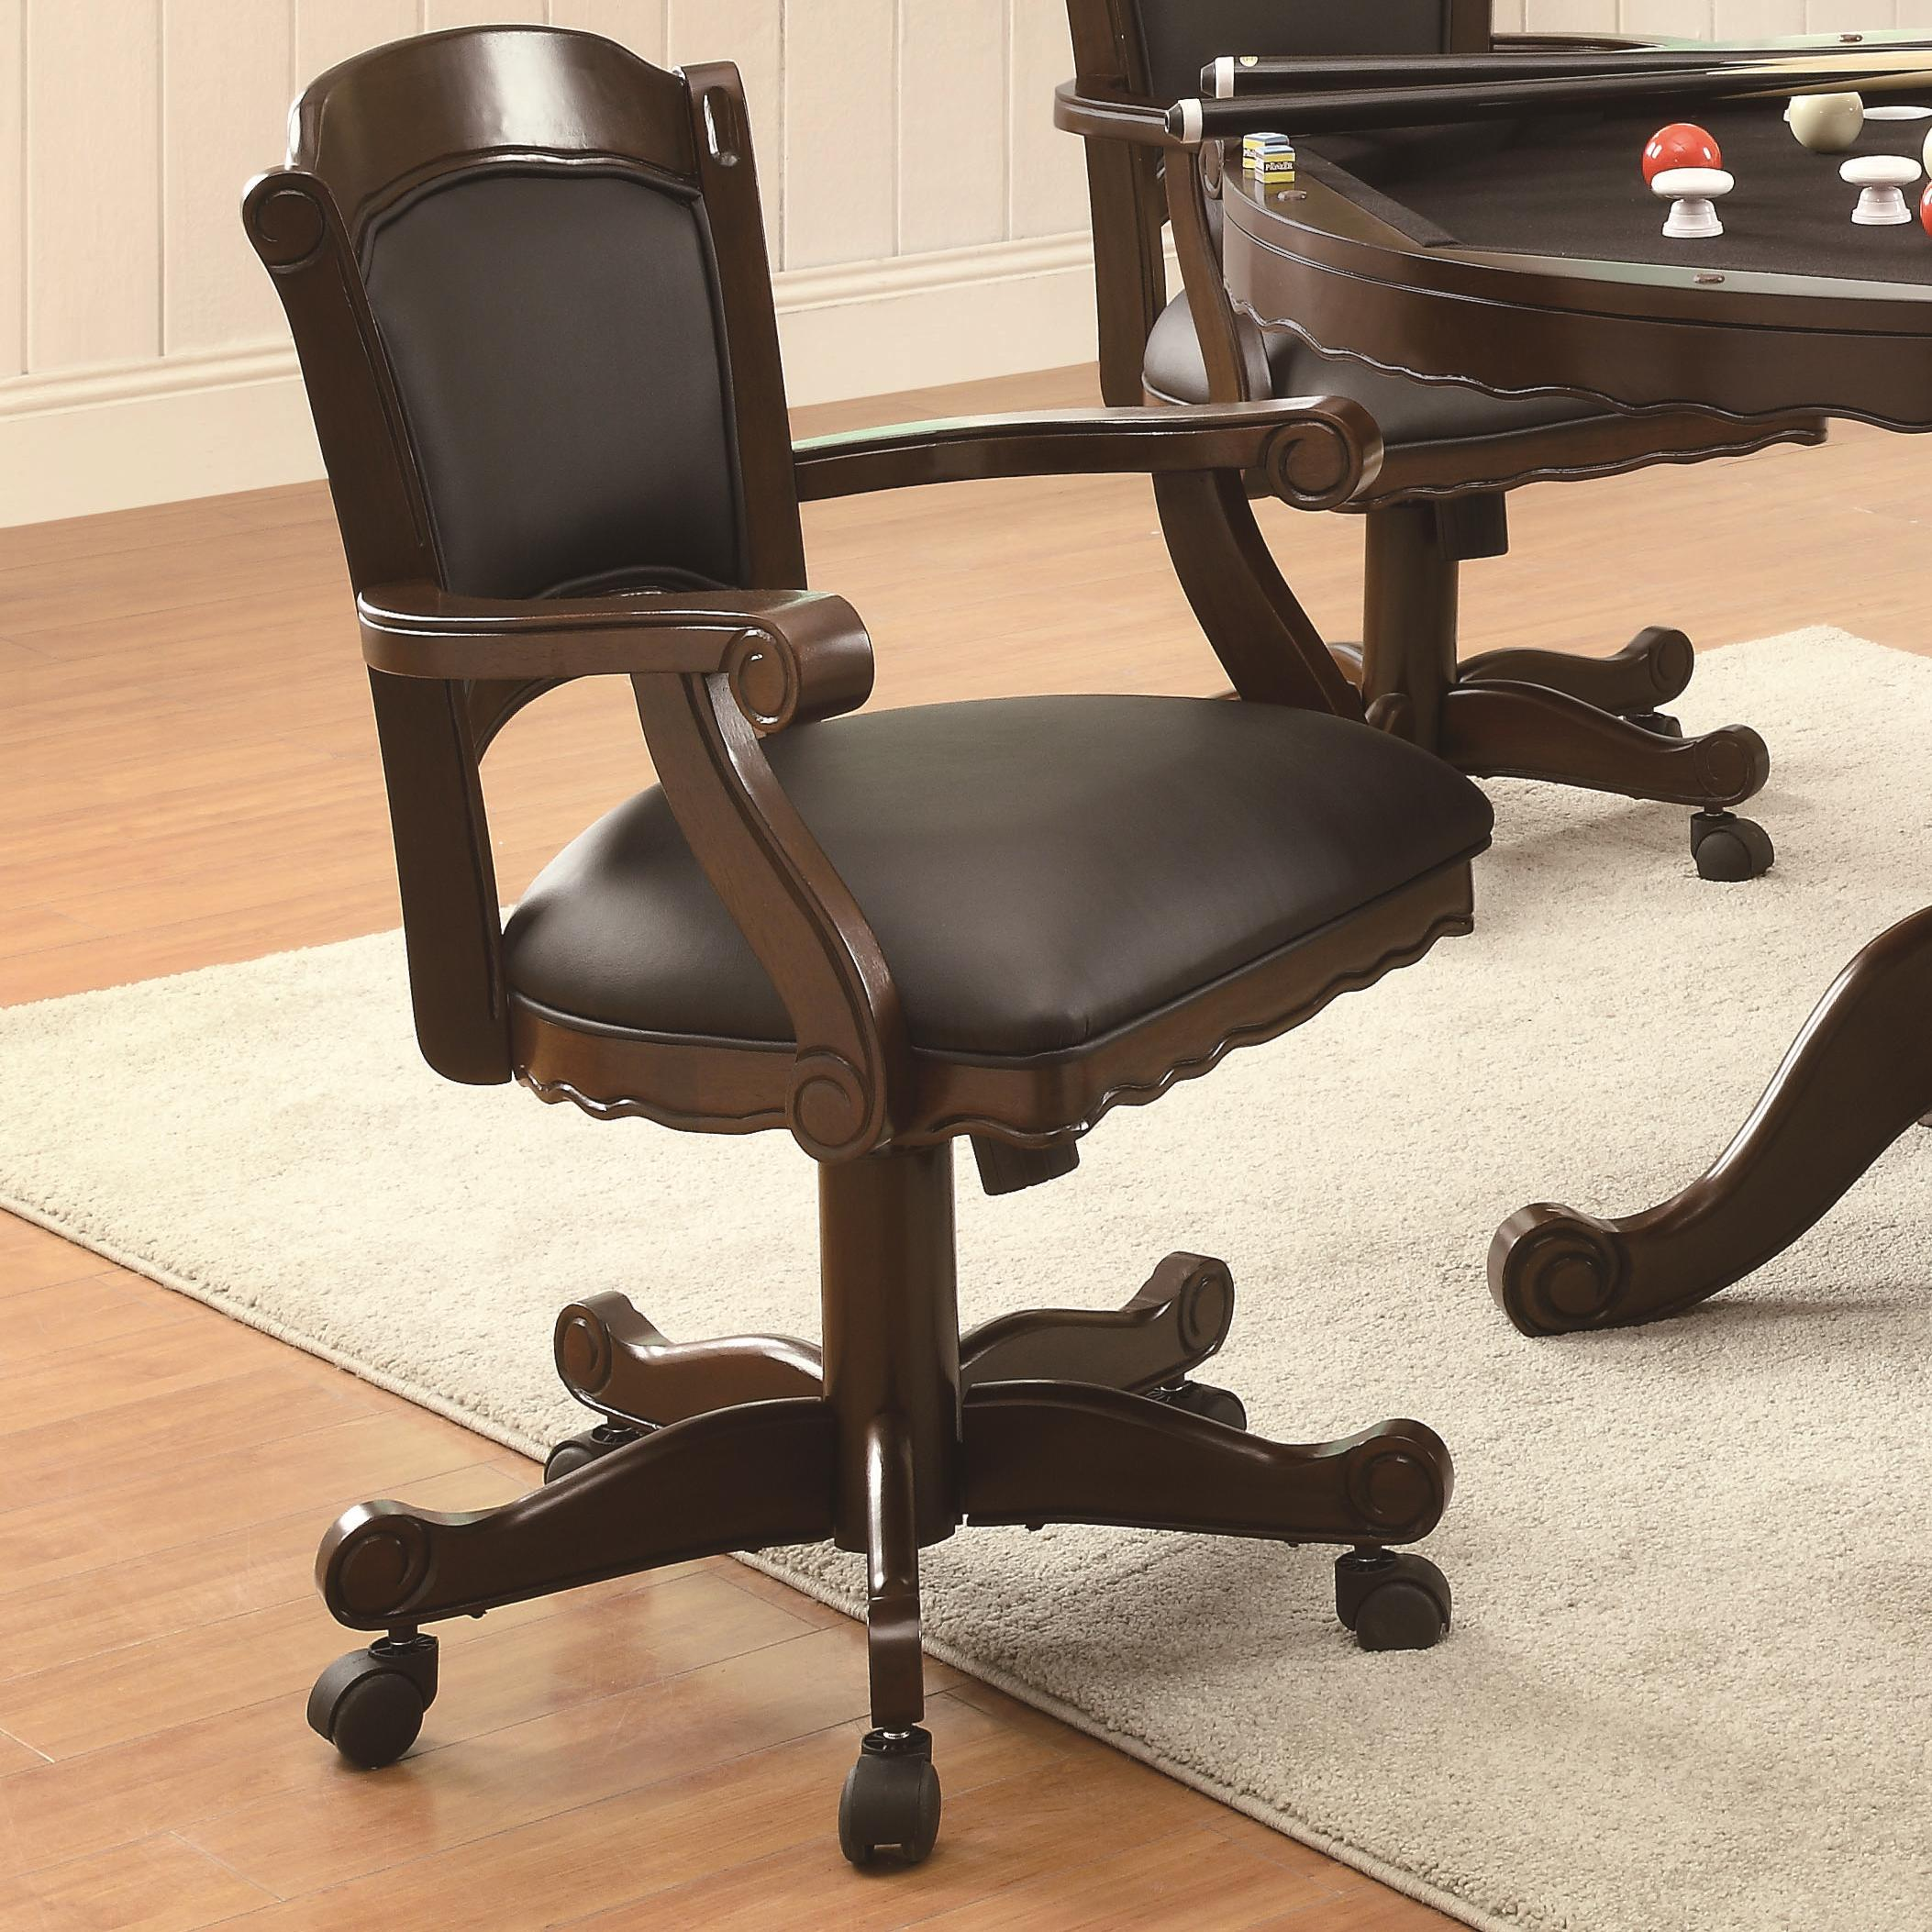 Chair Coasters Coaster Turk 100872 Arm Game Chair With Casters And Fabric